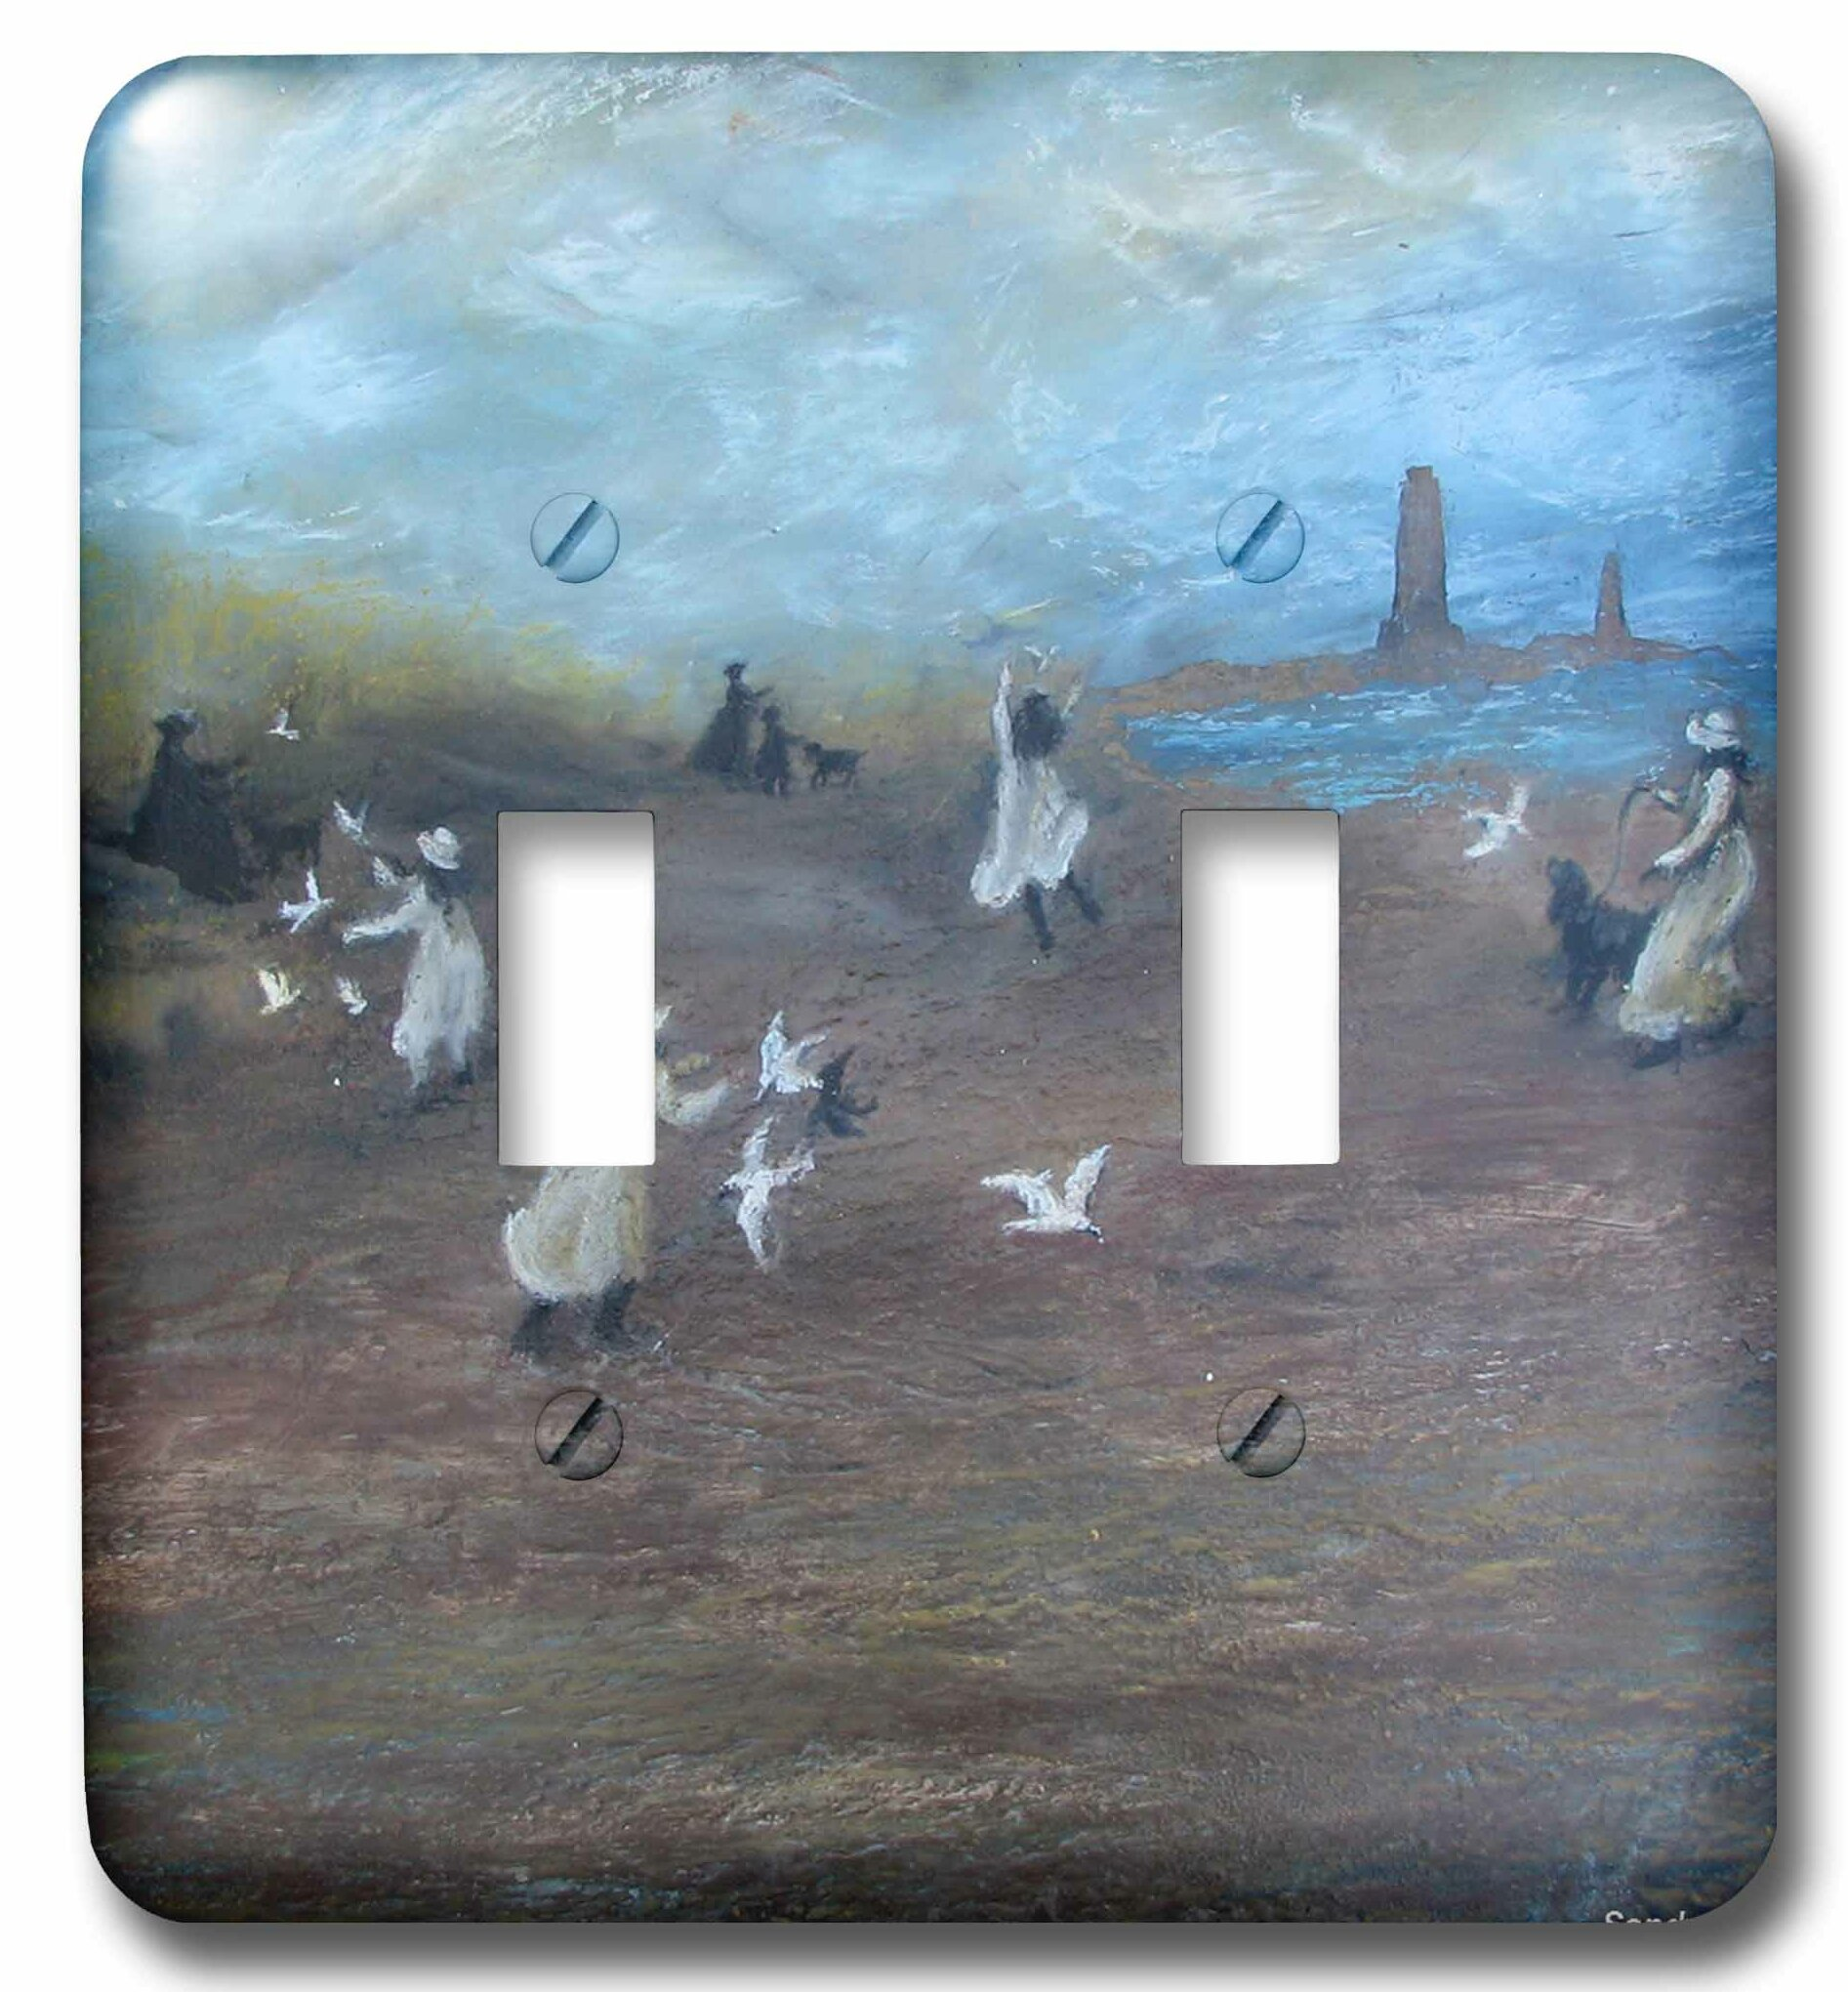 3drose Girls Dogs And Birds On The Beach 2 Gang Toggle Light Switch Wall Plate Wayfair